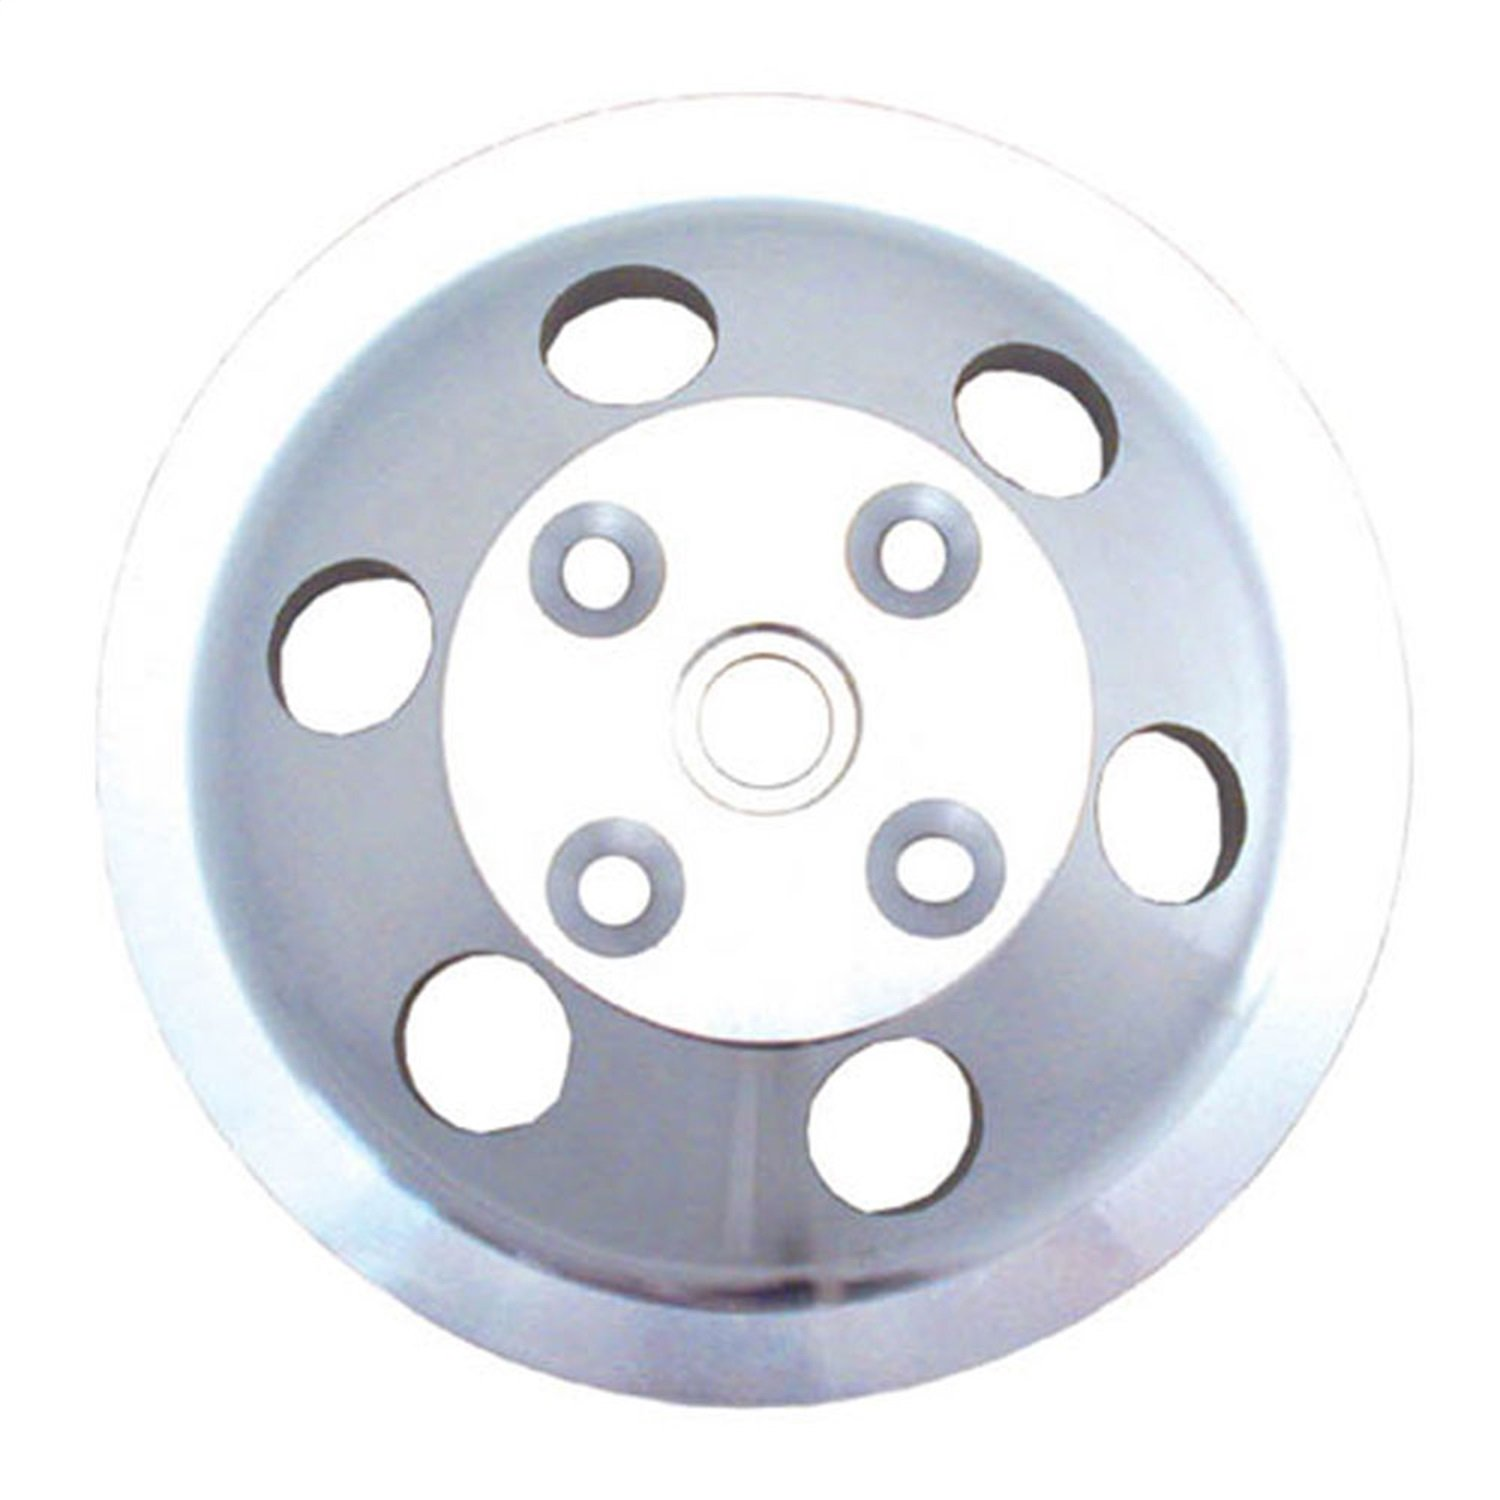 Spectre Performance 4419 Aluminum Water Pump Pulley SPE-4419